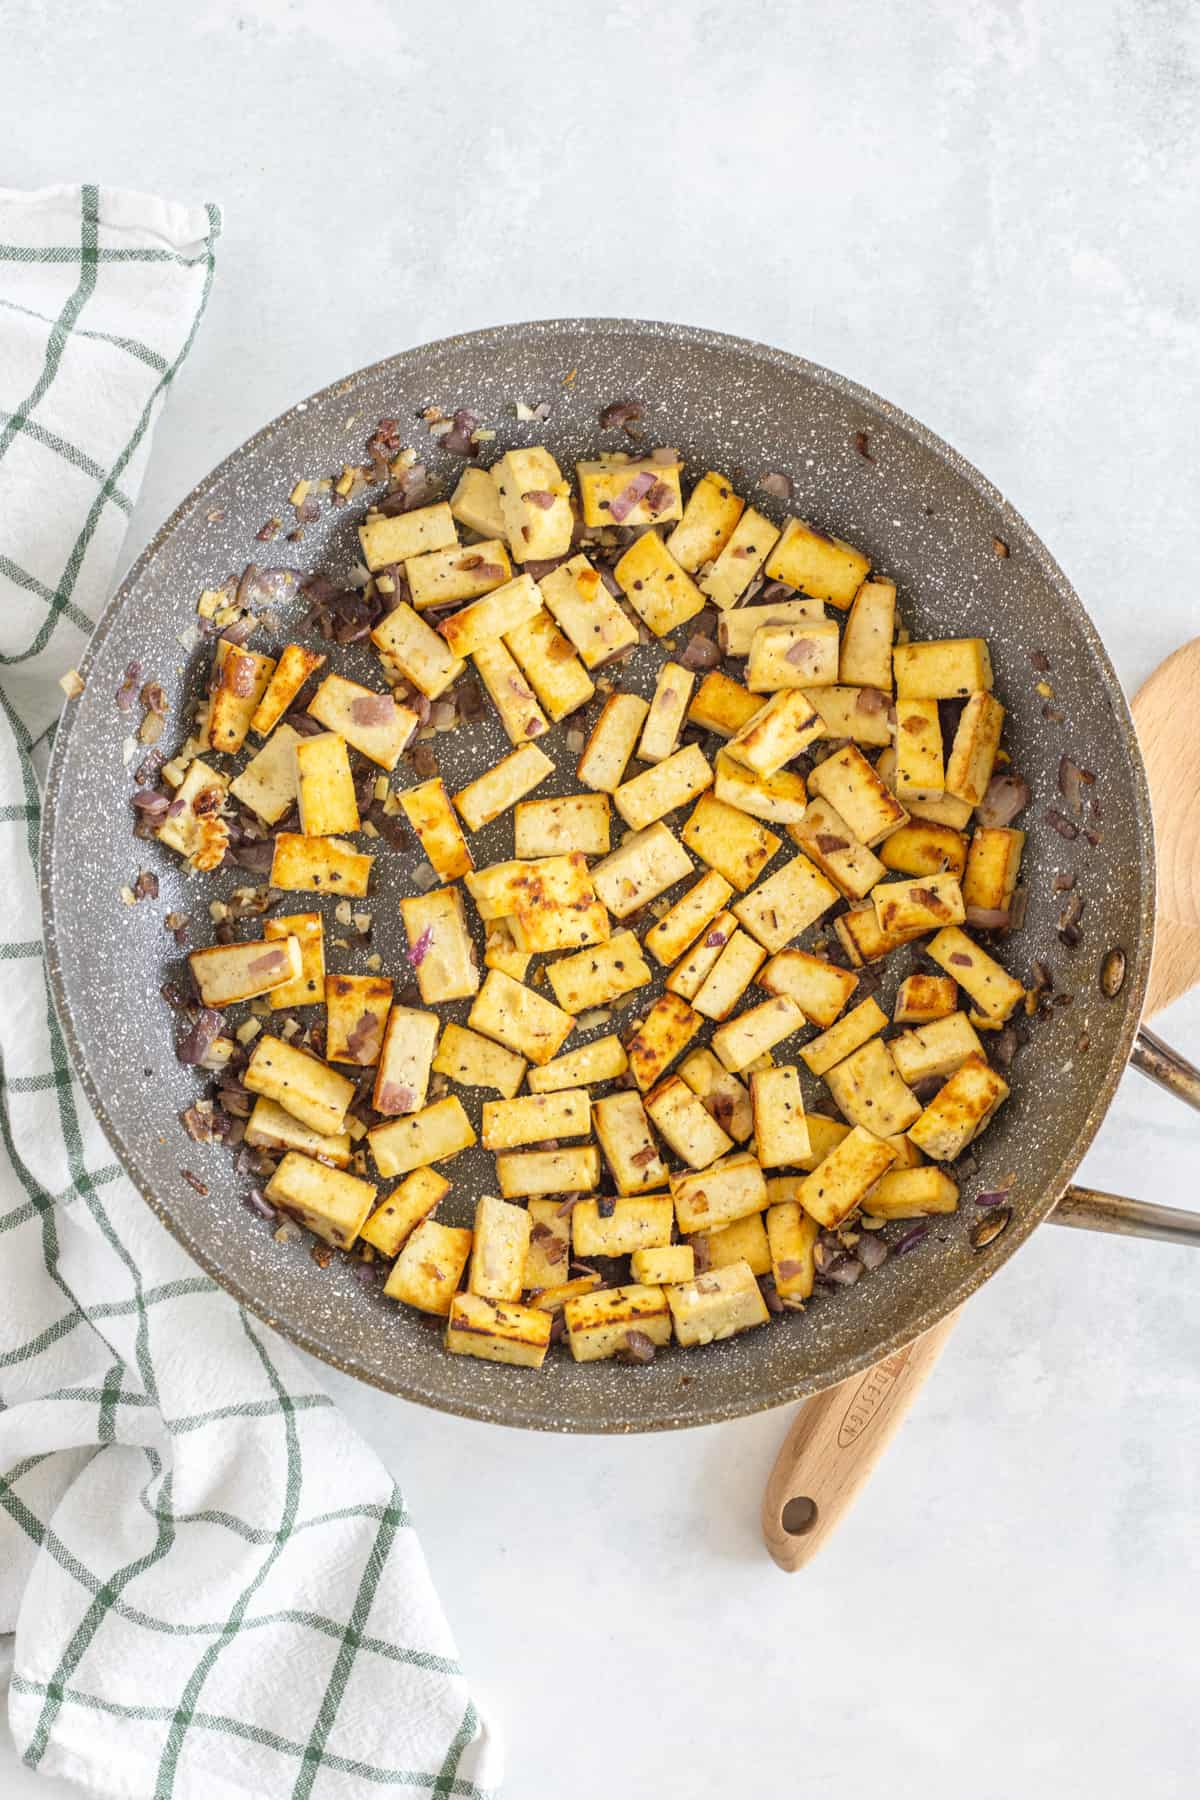 Cooked tofu in a skillet